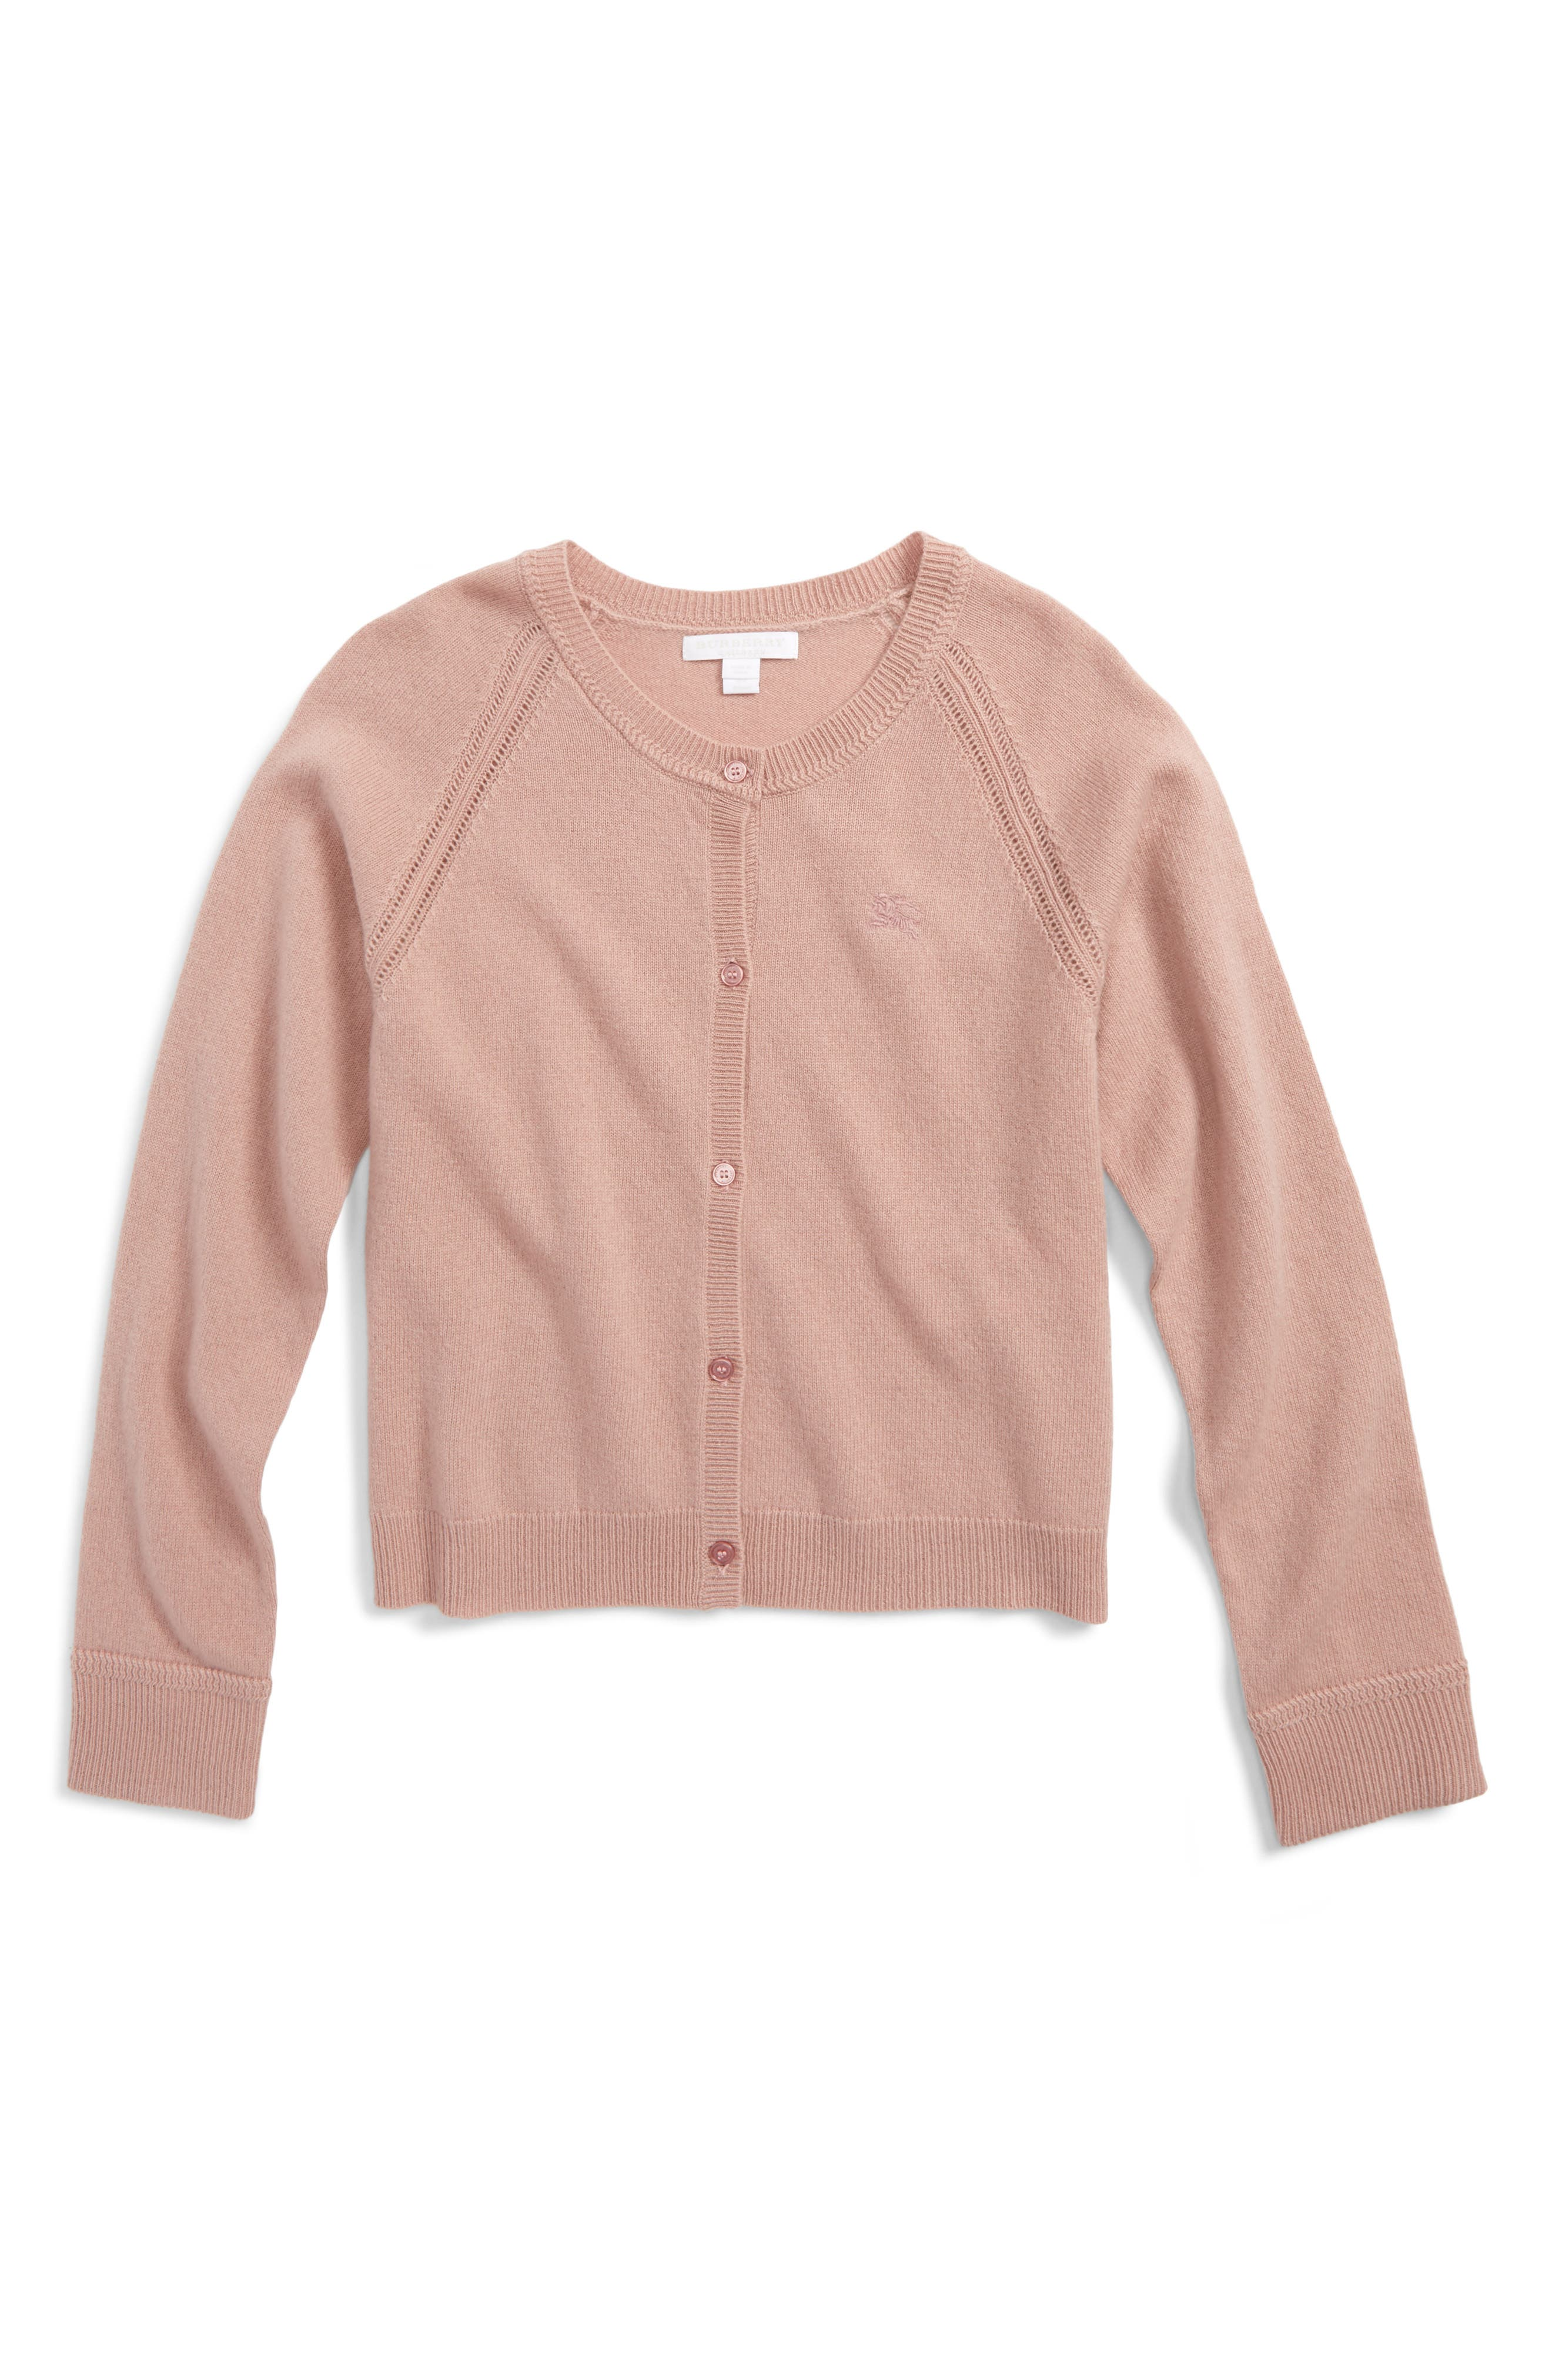 Gema Cashmere Cardigan,                         Main,                         color, Dusty Pink